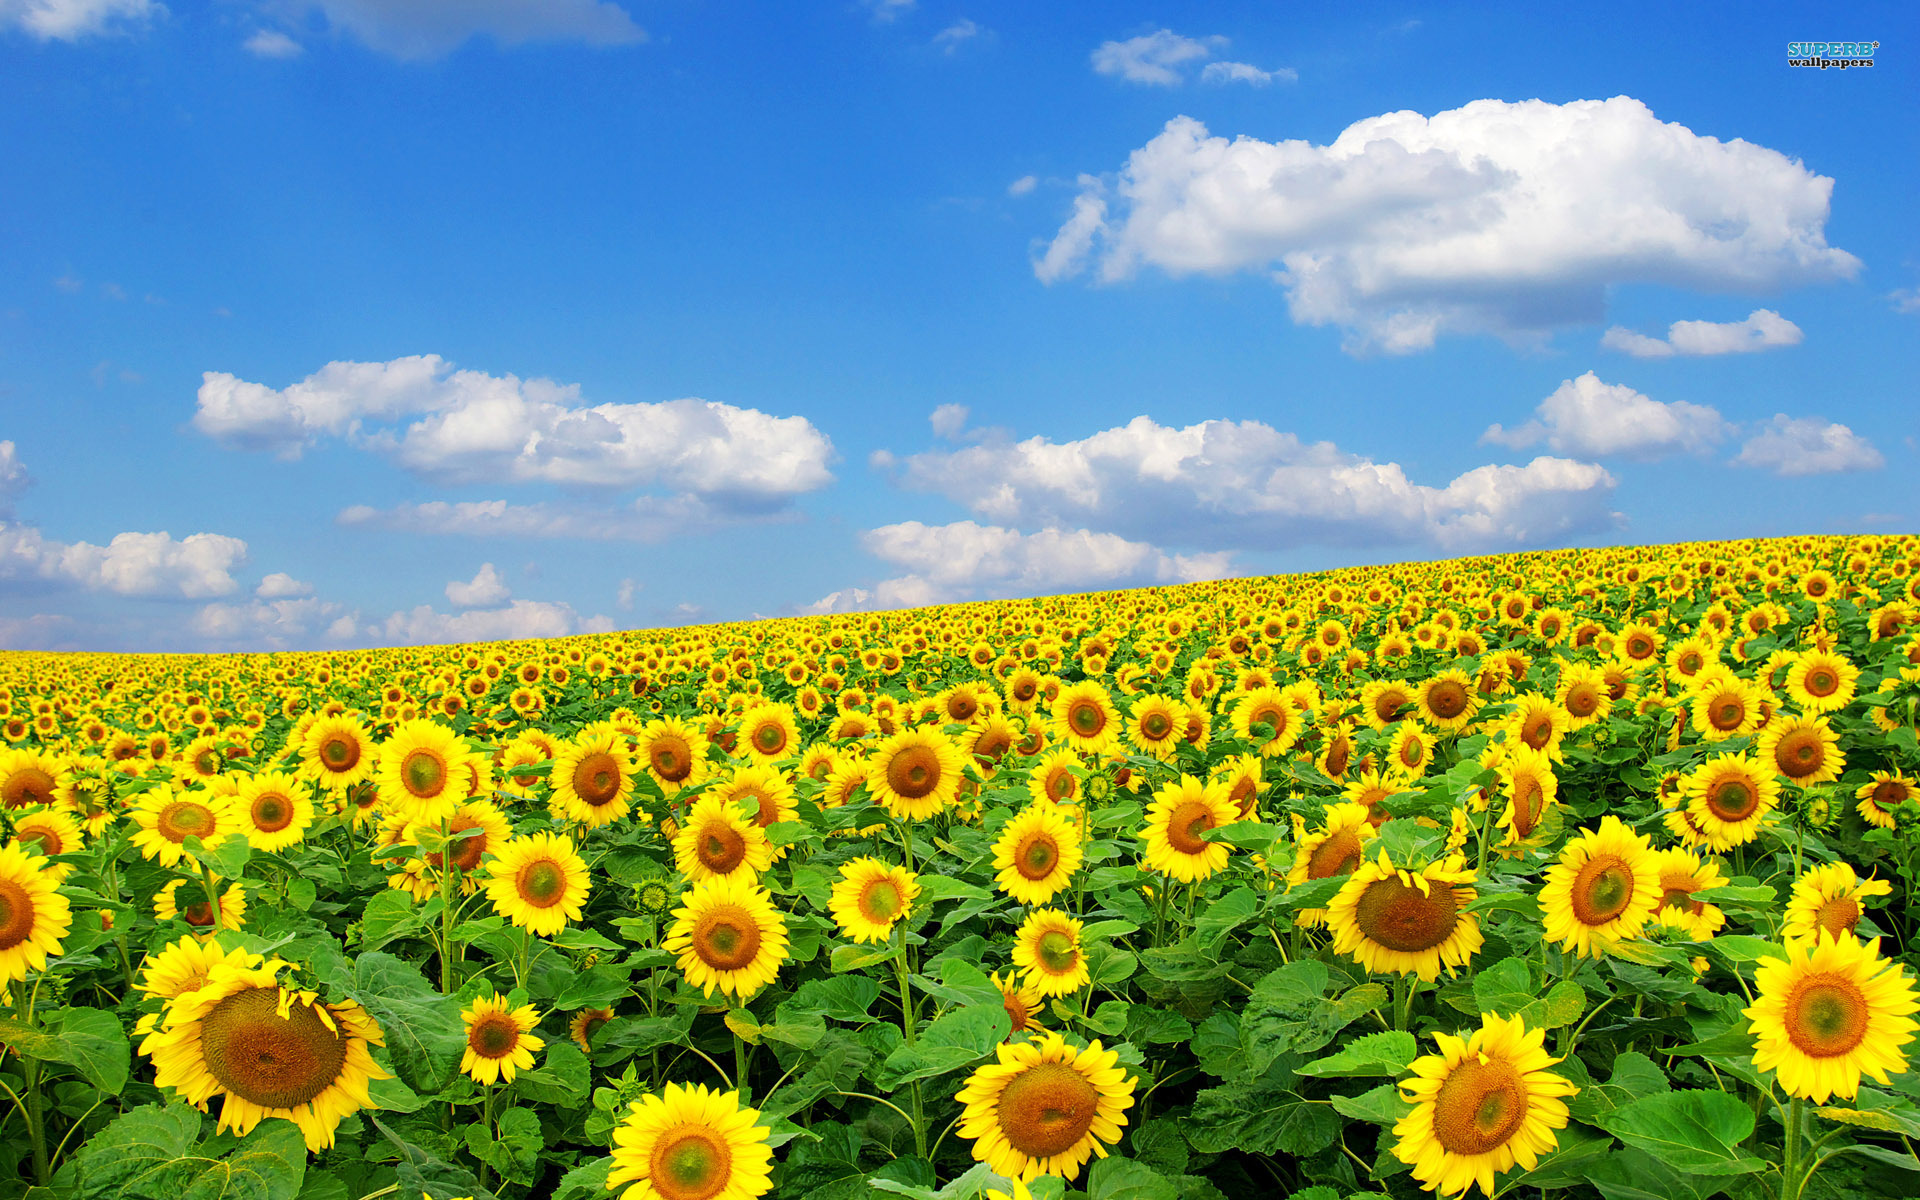 Sunflower Field Wallpaper